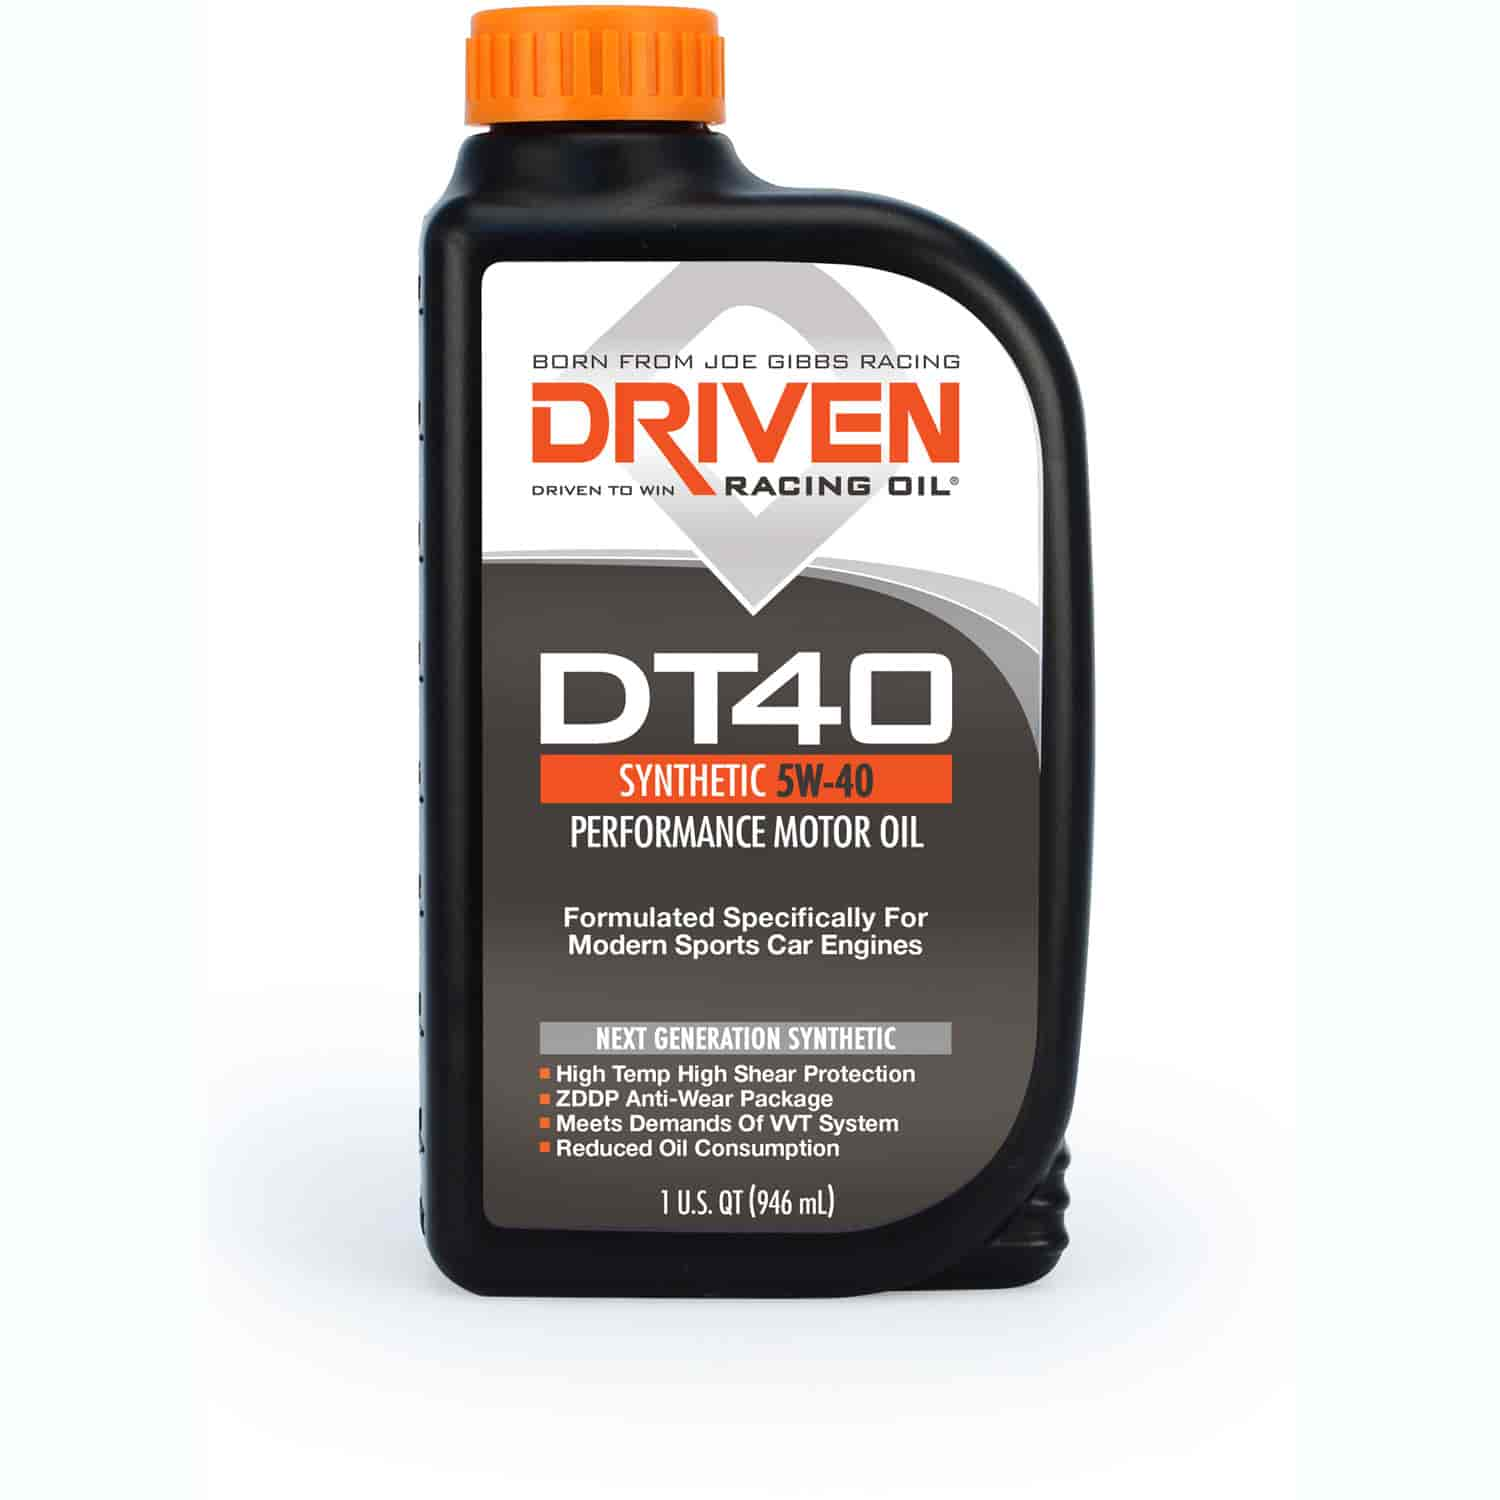 hight resolution of driven racing oil 02406